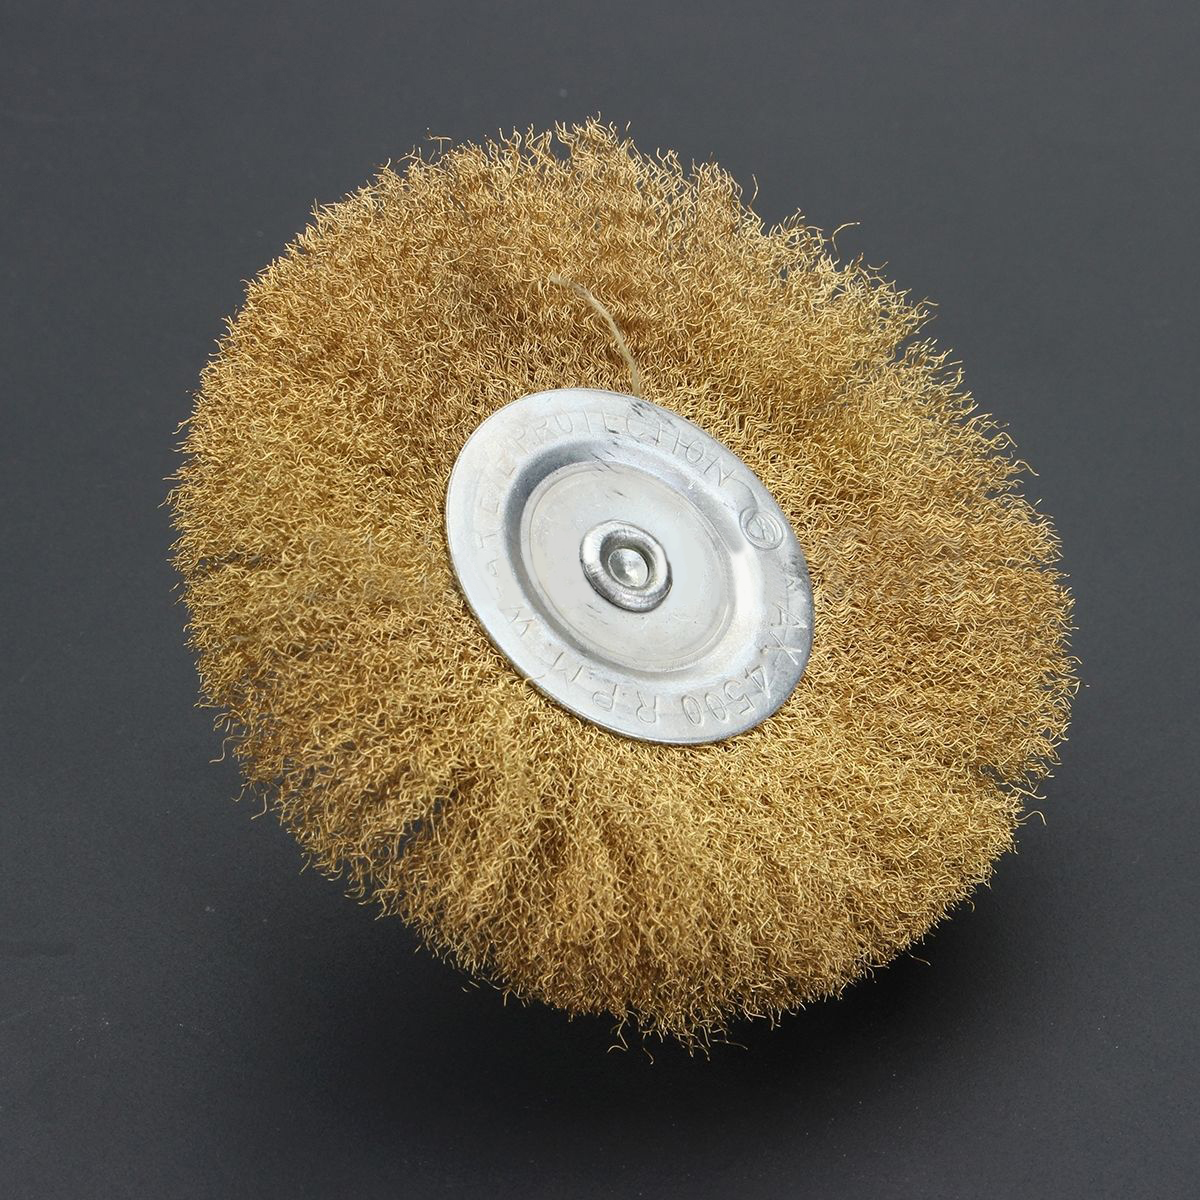 10x rotary mini tools steel wire wheel brushes cup rust cleaning - 1pc Mini Brass Plated Rotary Wire Wheel 100mm Diameter Mayitr Power Drill Brush 1 4 Shank For Cleaning Rust Paint Scale Dirt